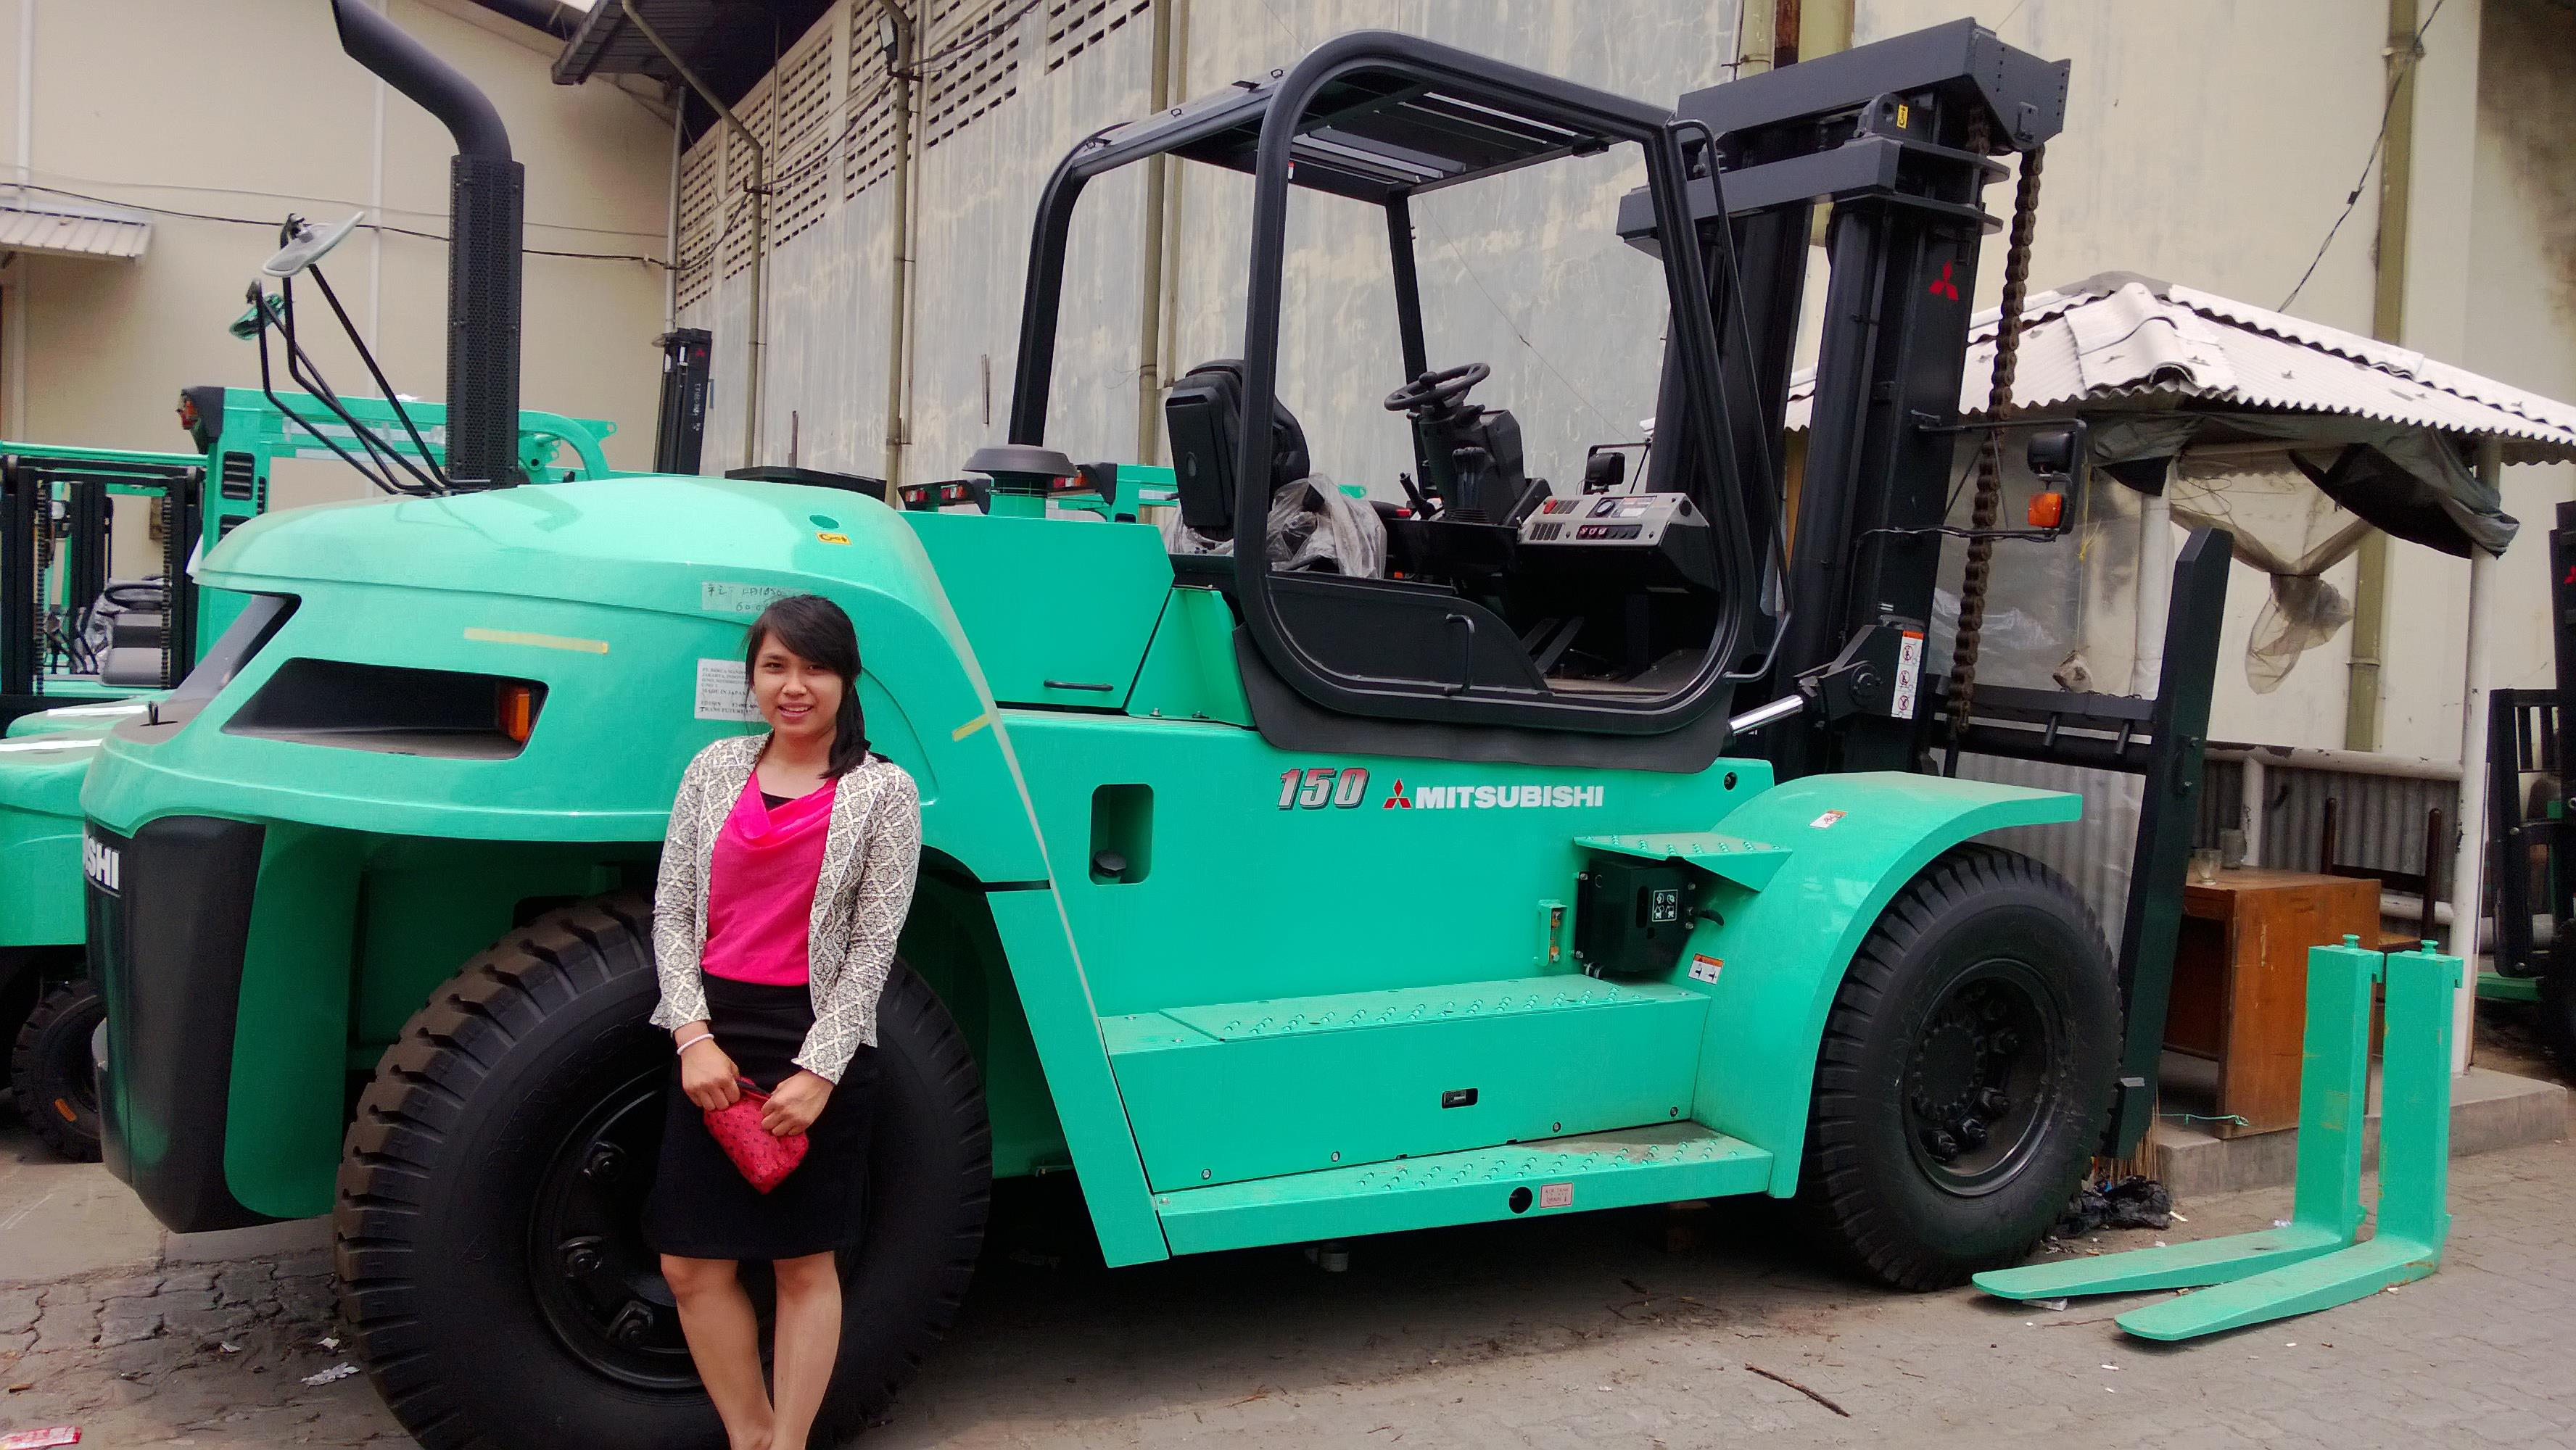 auckland stellar mitsubishi repair machinery nz forklifts img rough buy hire terrain maximal